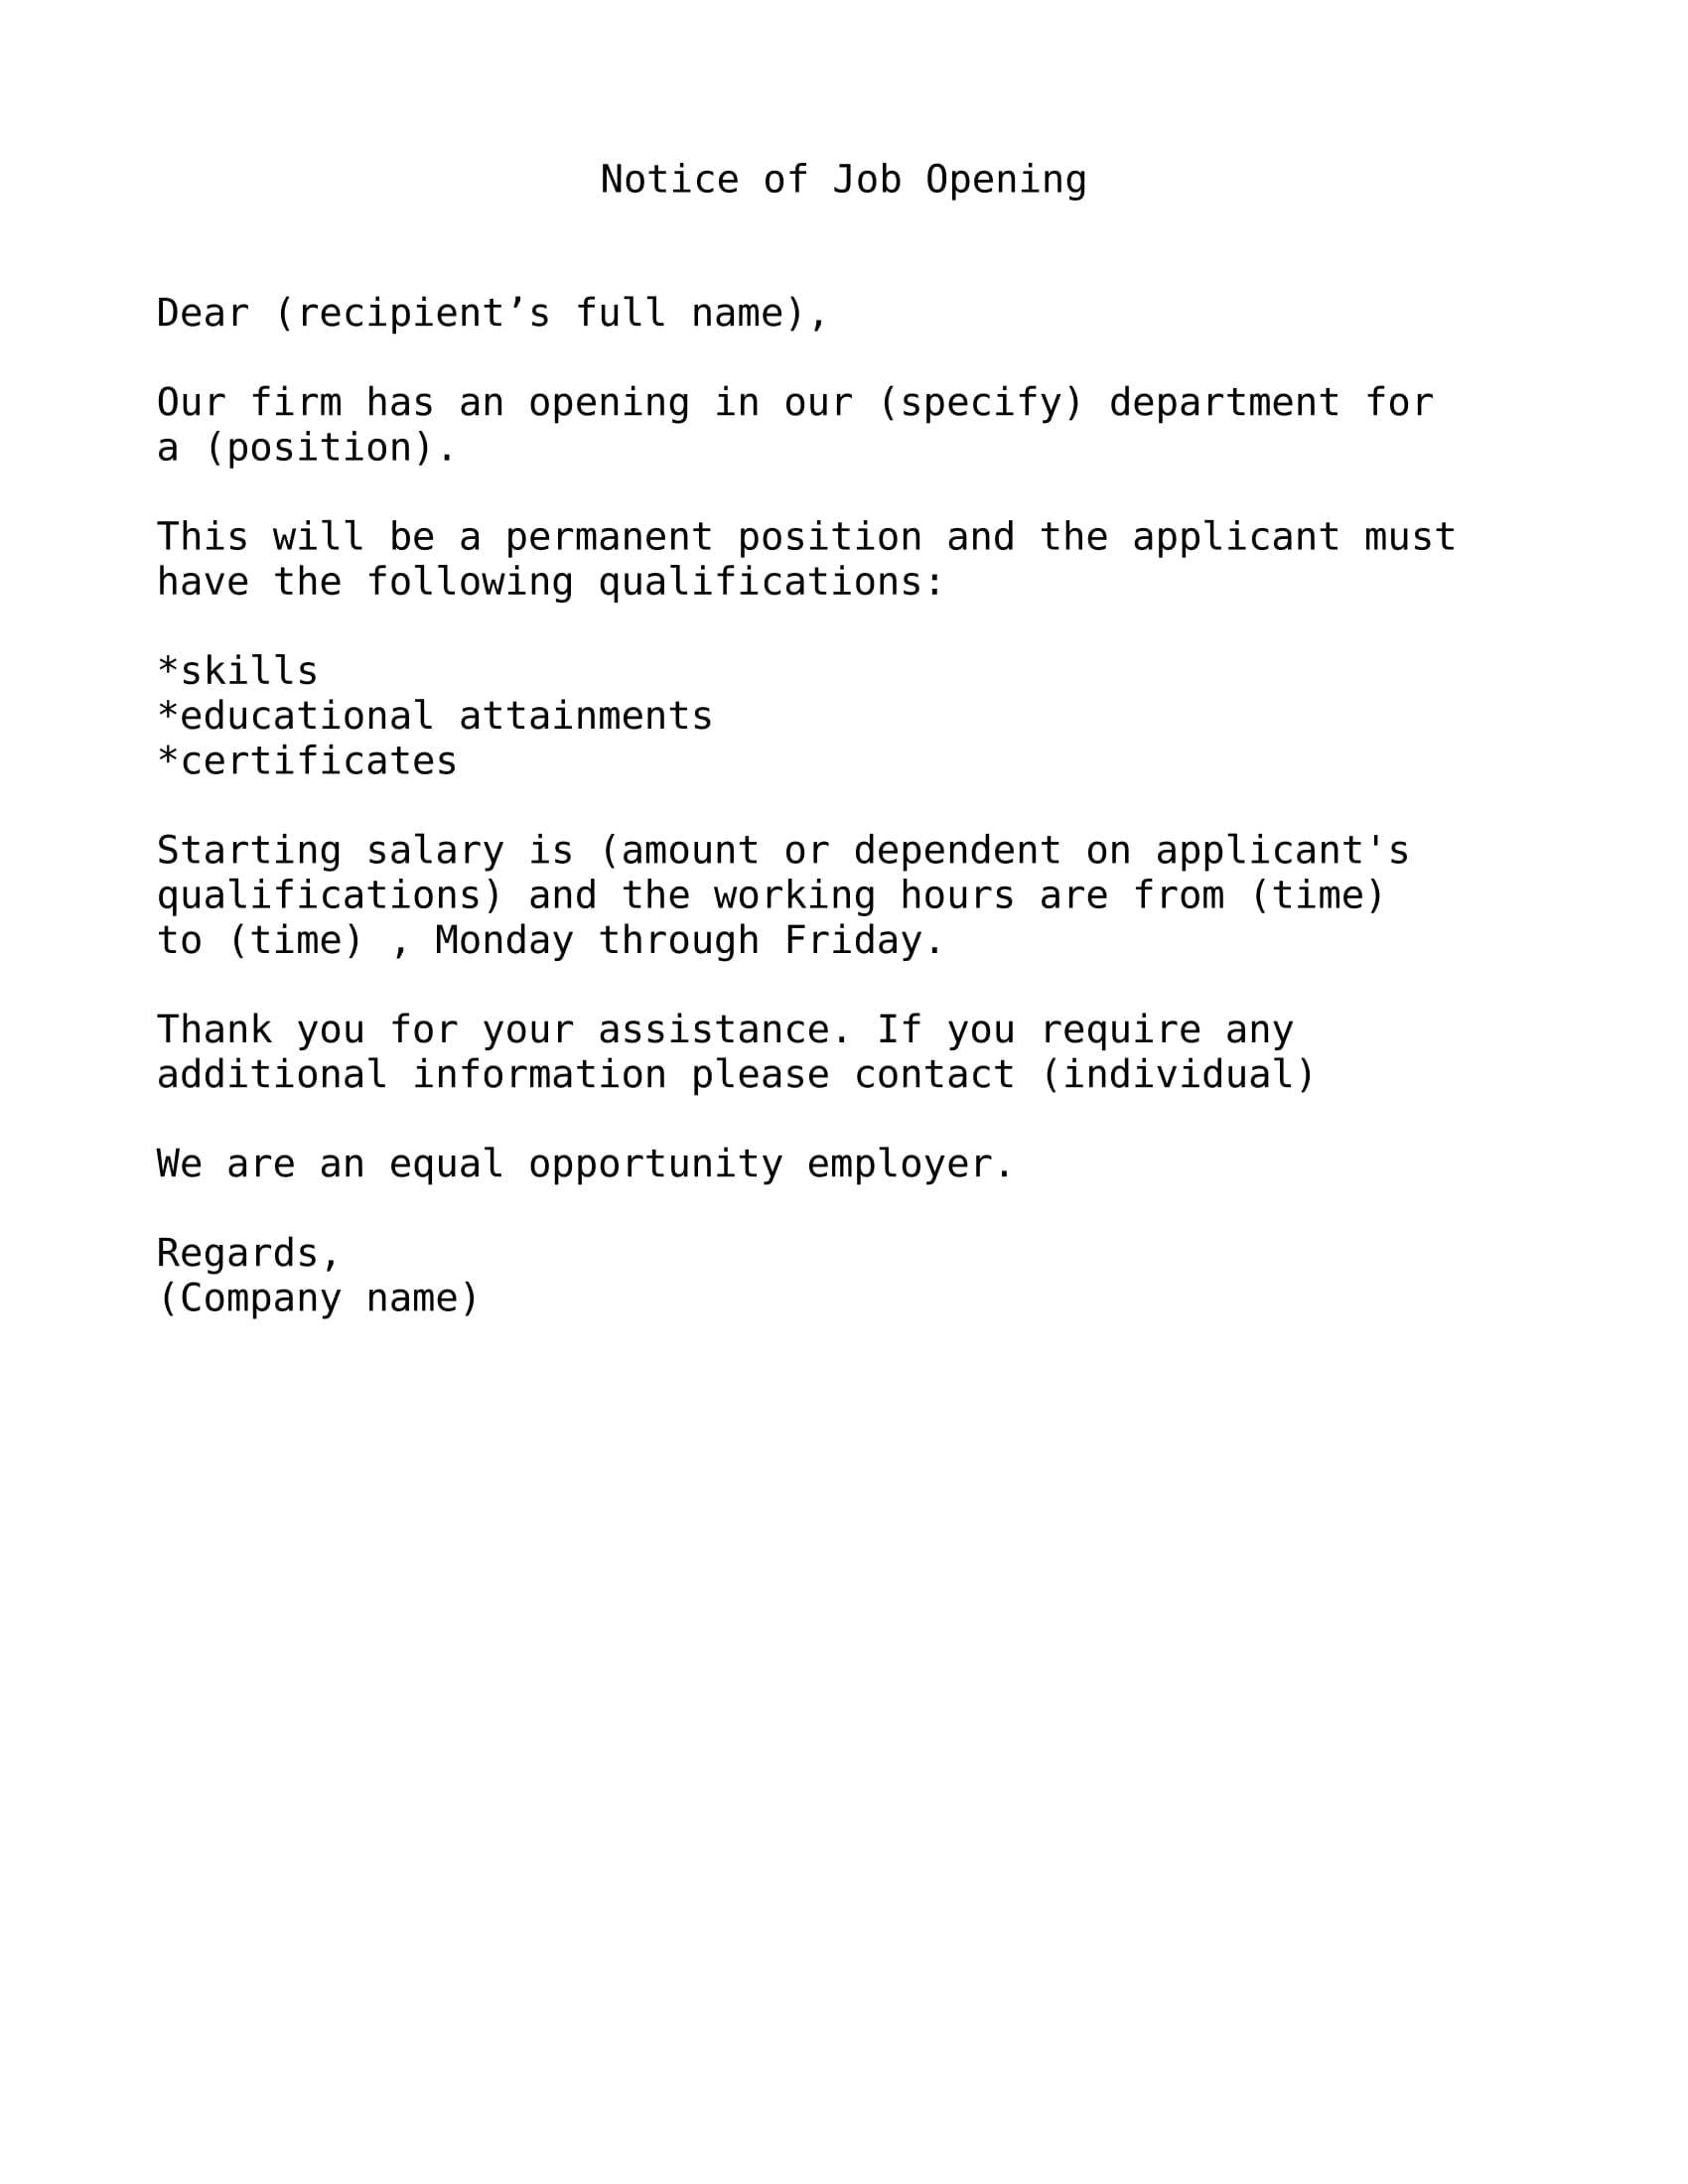 notice of job opening letter format 1